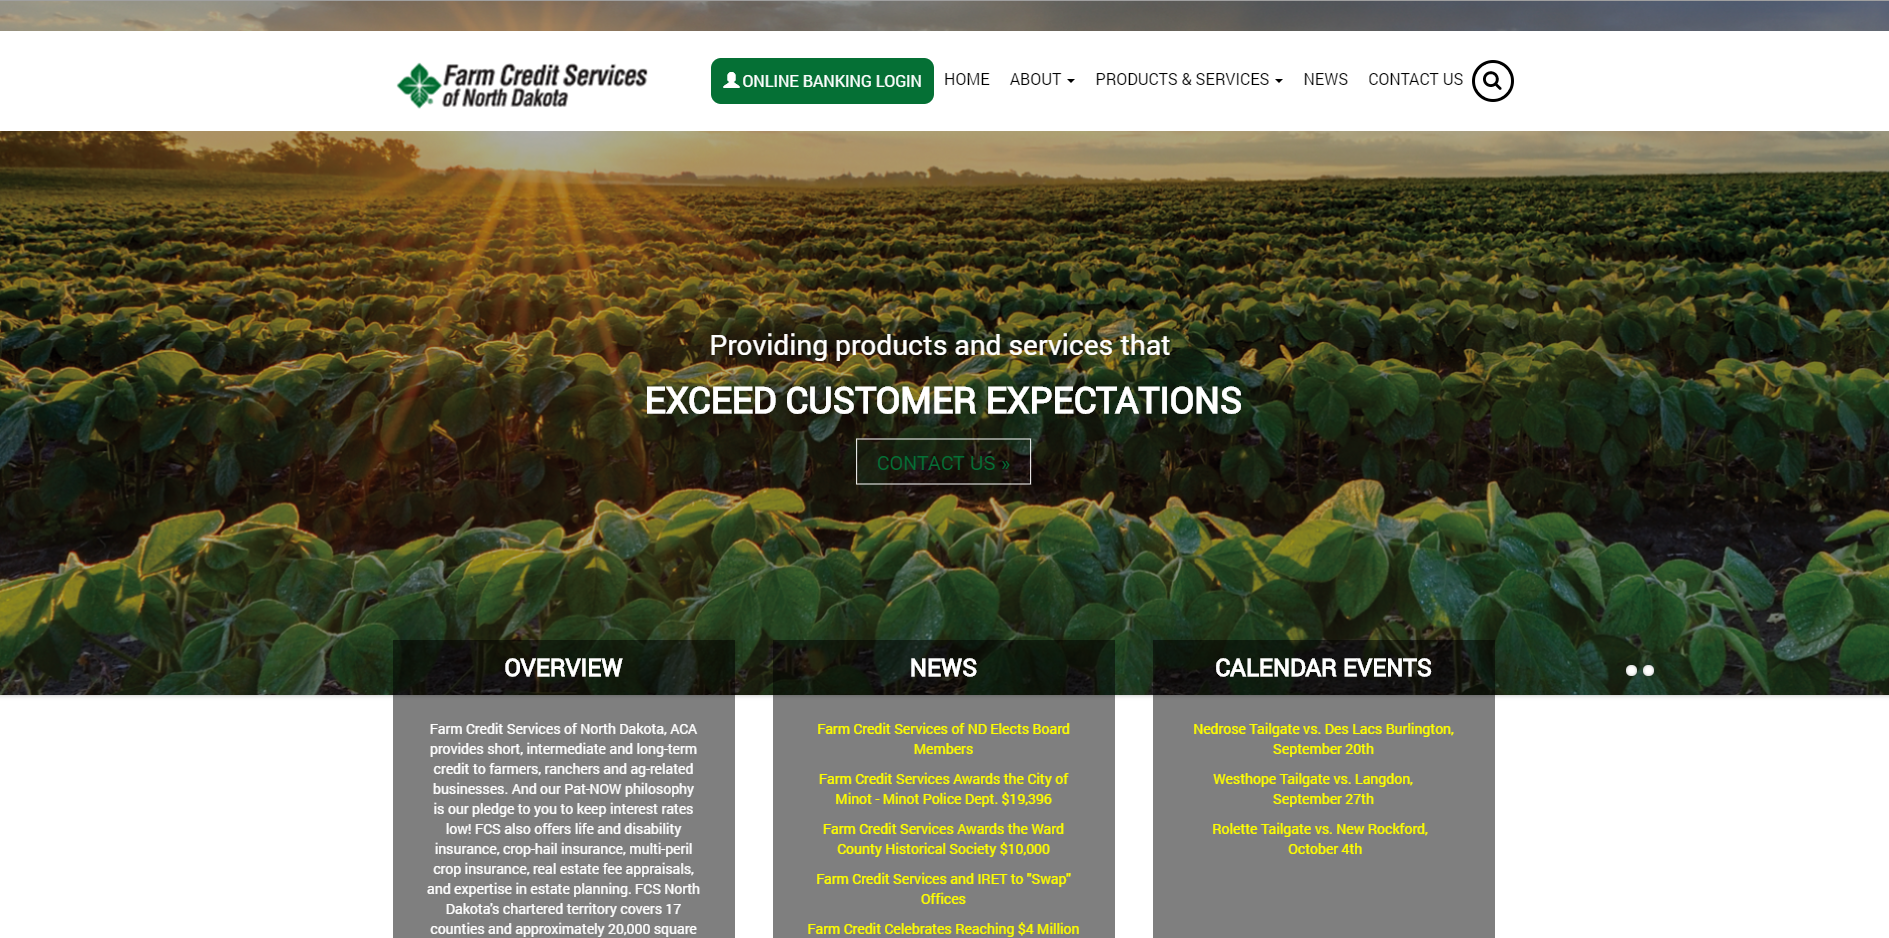 farm credit services website homepage